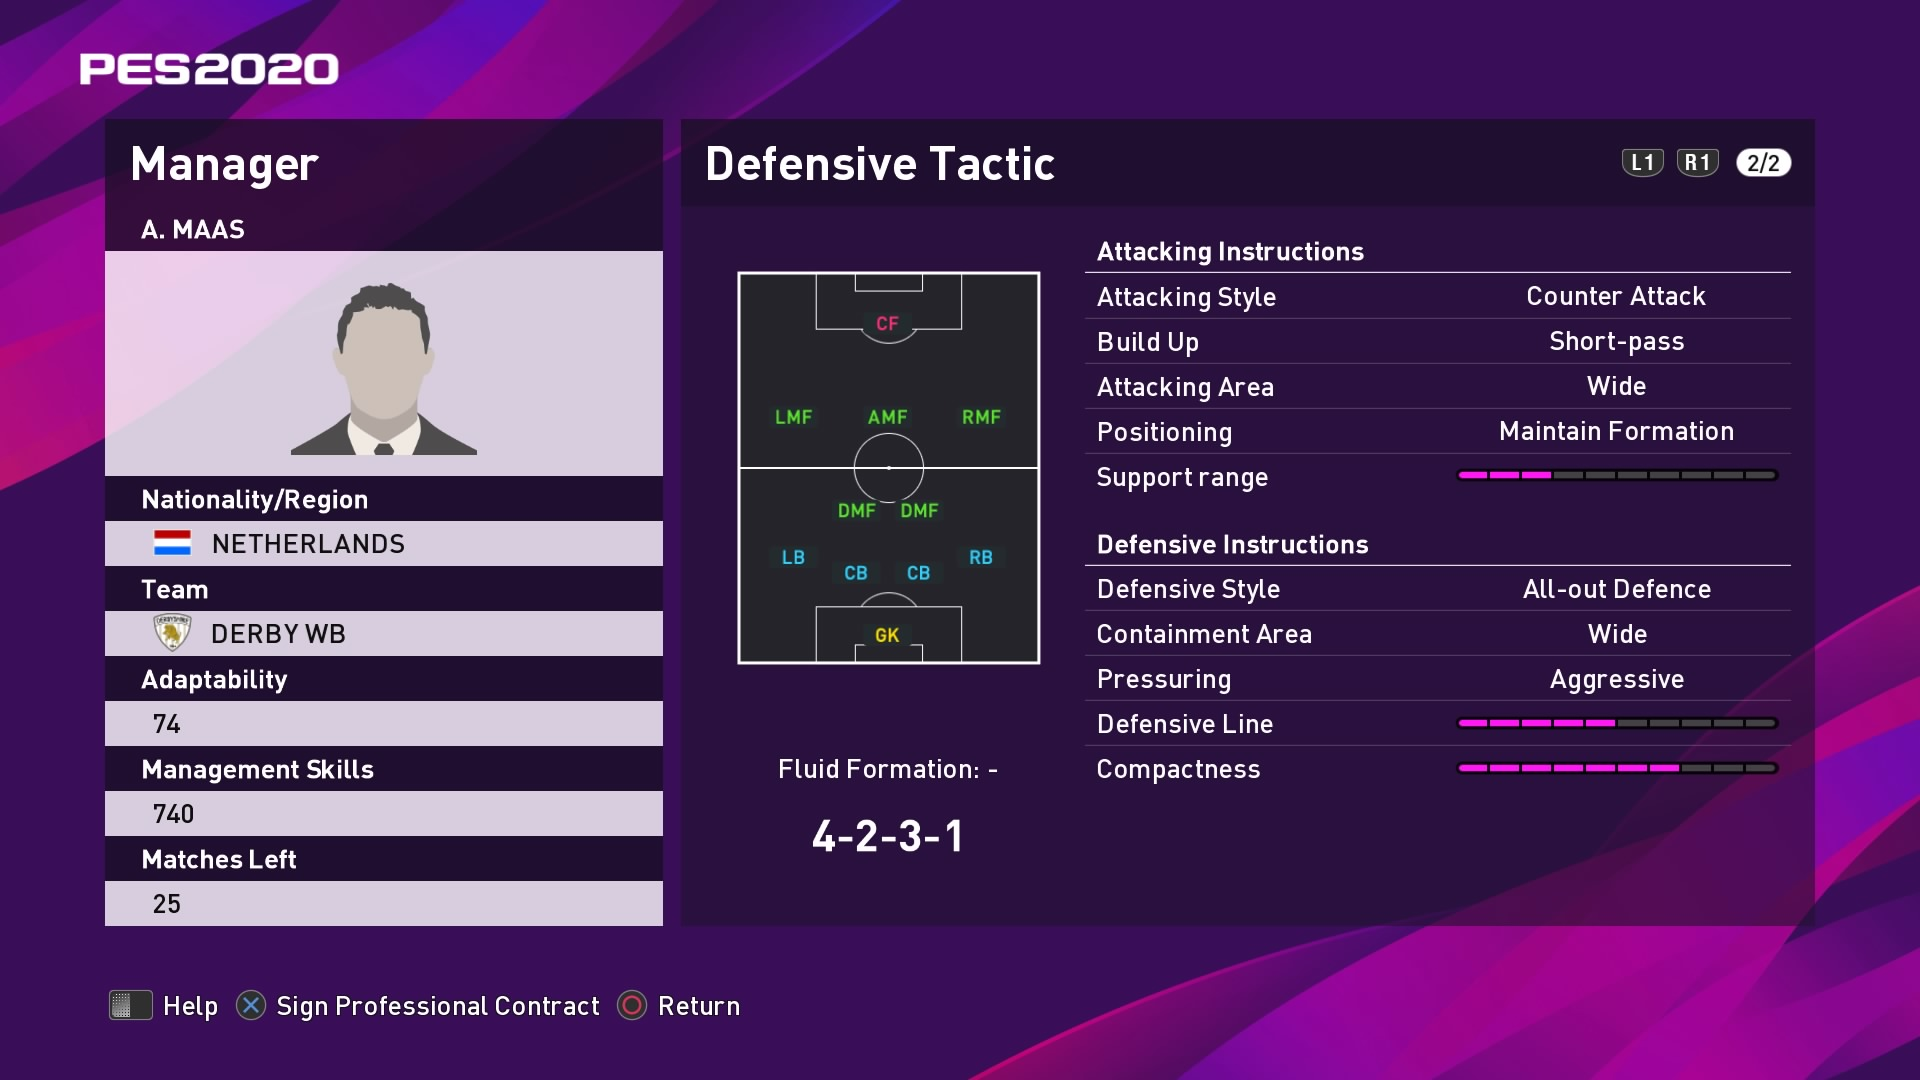 A. Maas (2) (Phillip Cocu) Defensive Tactic in PES 2020 myClub